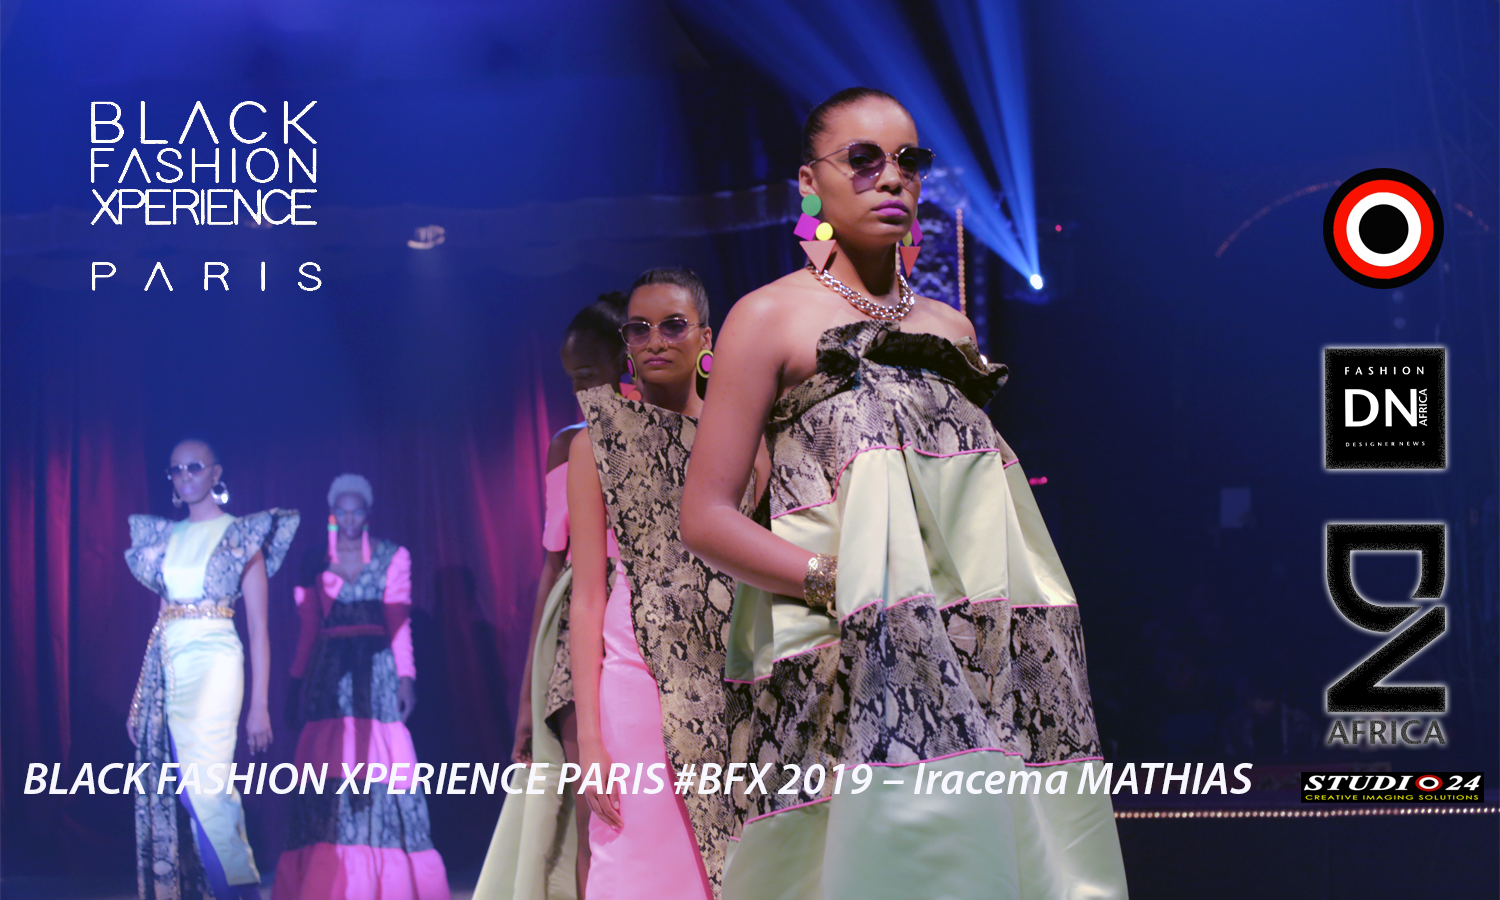 AFRICAN FASHION STYLE MAGAZINE - Black-Fashion-Xperience-2019-Adama-Paris - Designer Iracema MATHIAS - Model Dorinex Longin Mboumba - PR Indirâh Events and Communication - Photographer DAN NGU - Official Media Partner DN AFRICA - STUDIO 24 NIGERIA - STUDIO 24 INTERNATIONAL - Ifeanyi Christopher Oputa MD AND CEO OF COLVI LIMITED AND STUDIO 24 - CHEVEUX CHERIE and CHEVEUX CHERIE STUDIO BY MARIEME DUBOZ- Fashion Editor Nahomie NOOR COULIBALY